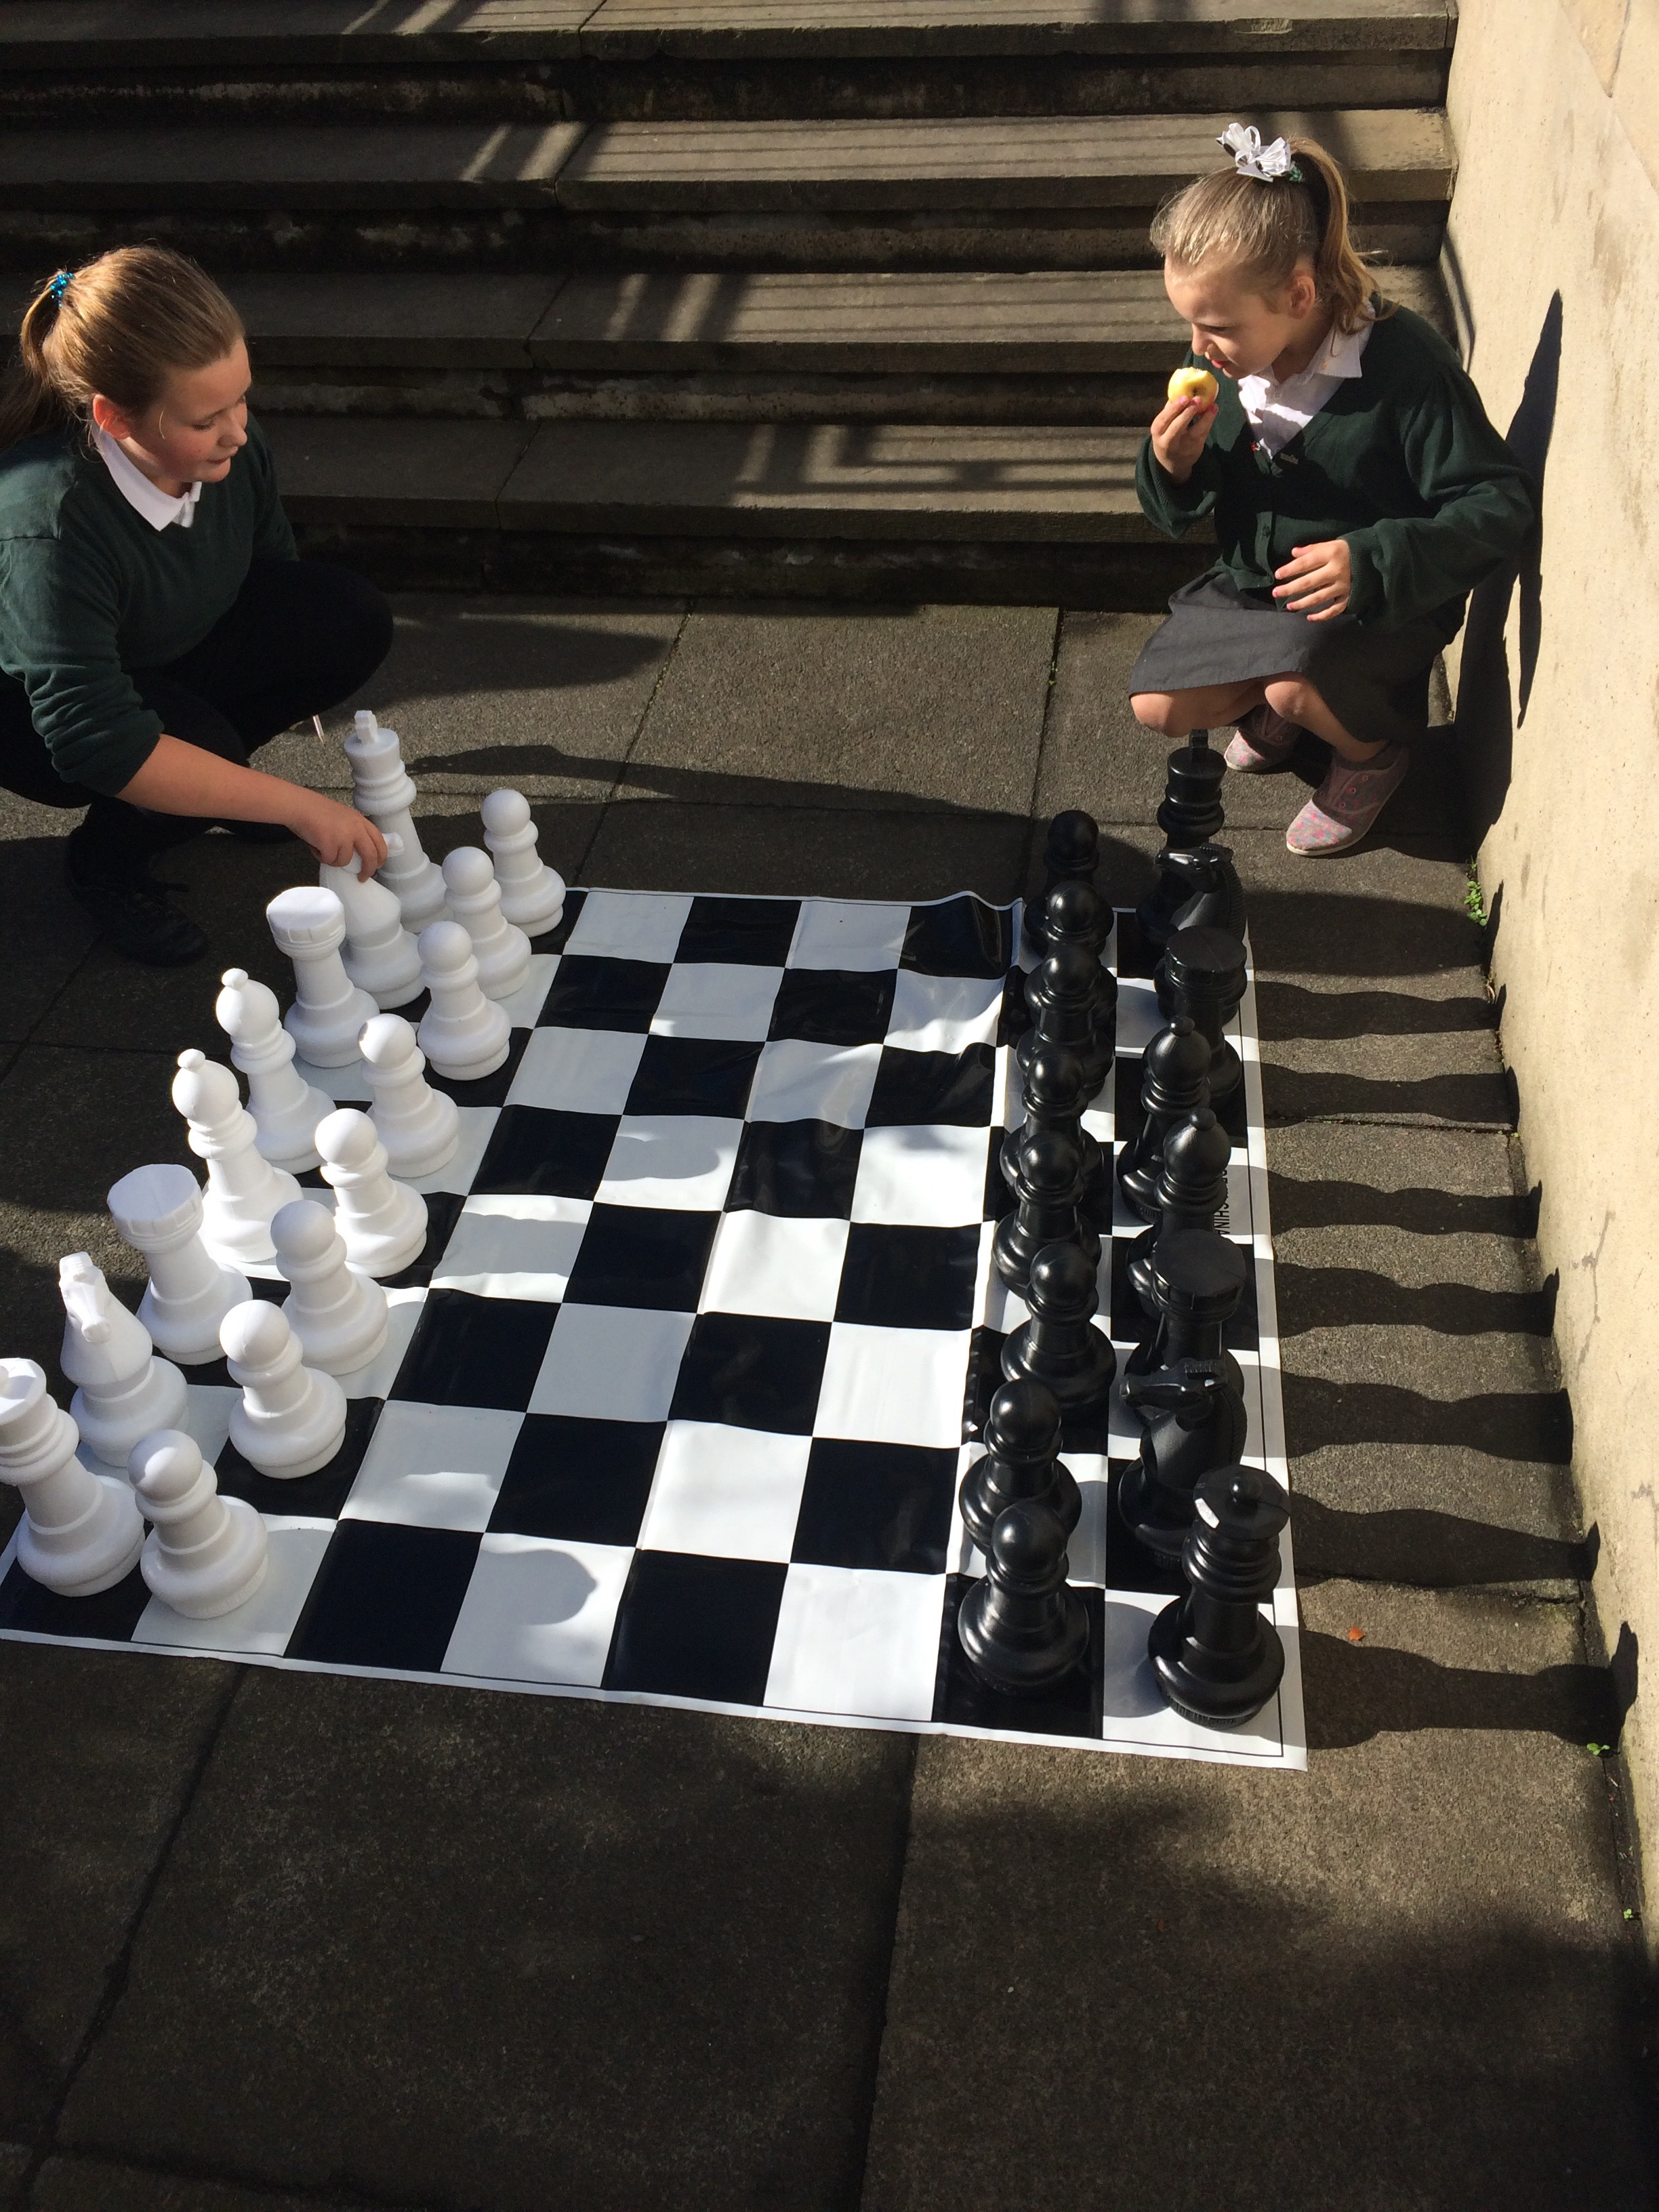 Outdoor Chess for Ash Green from Ward Forum Grant   Halifax